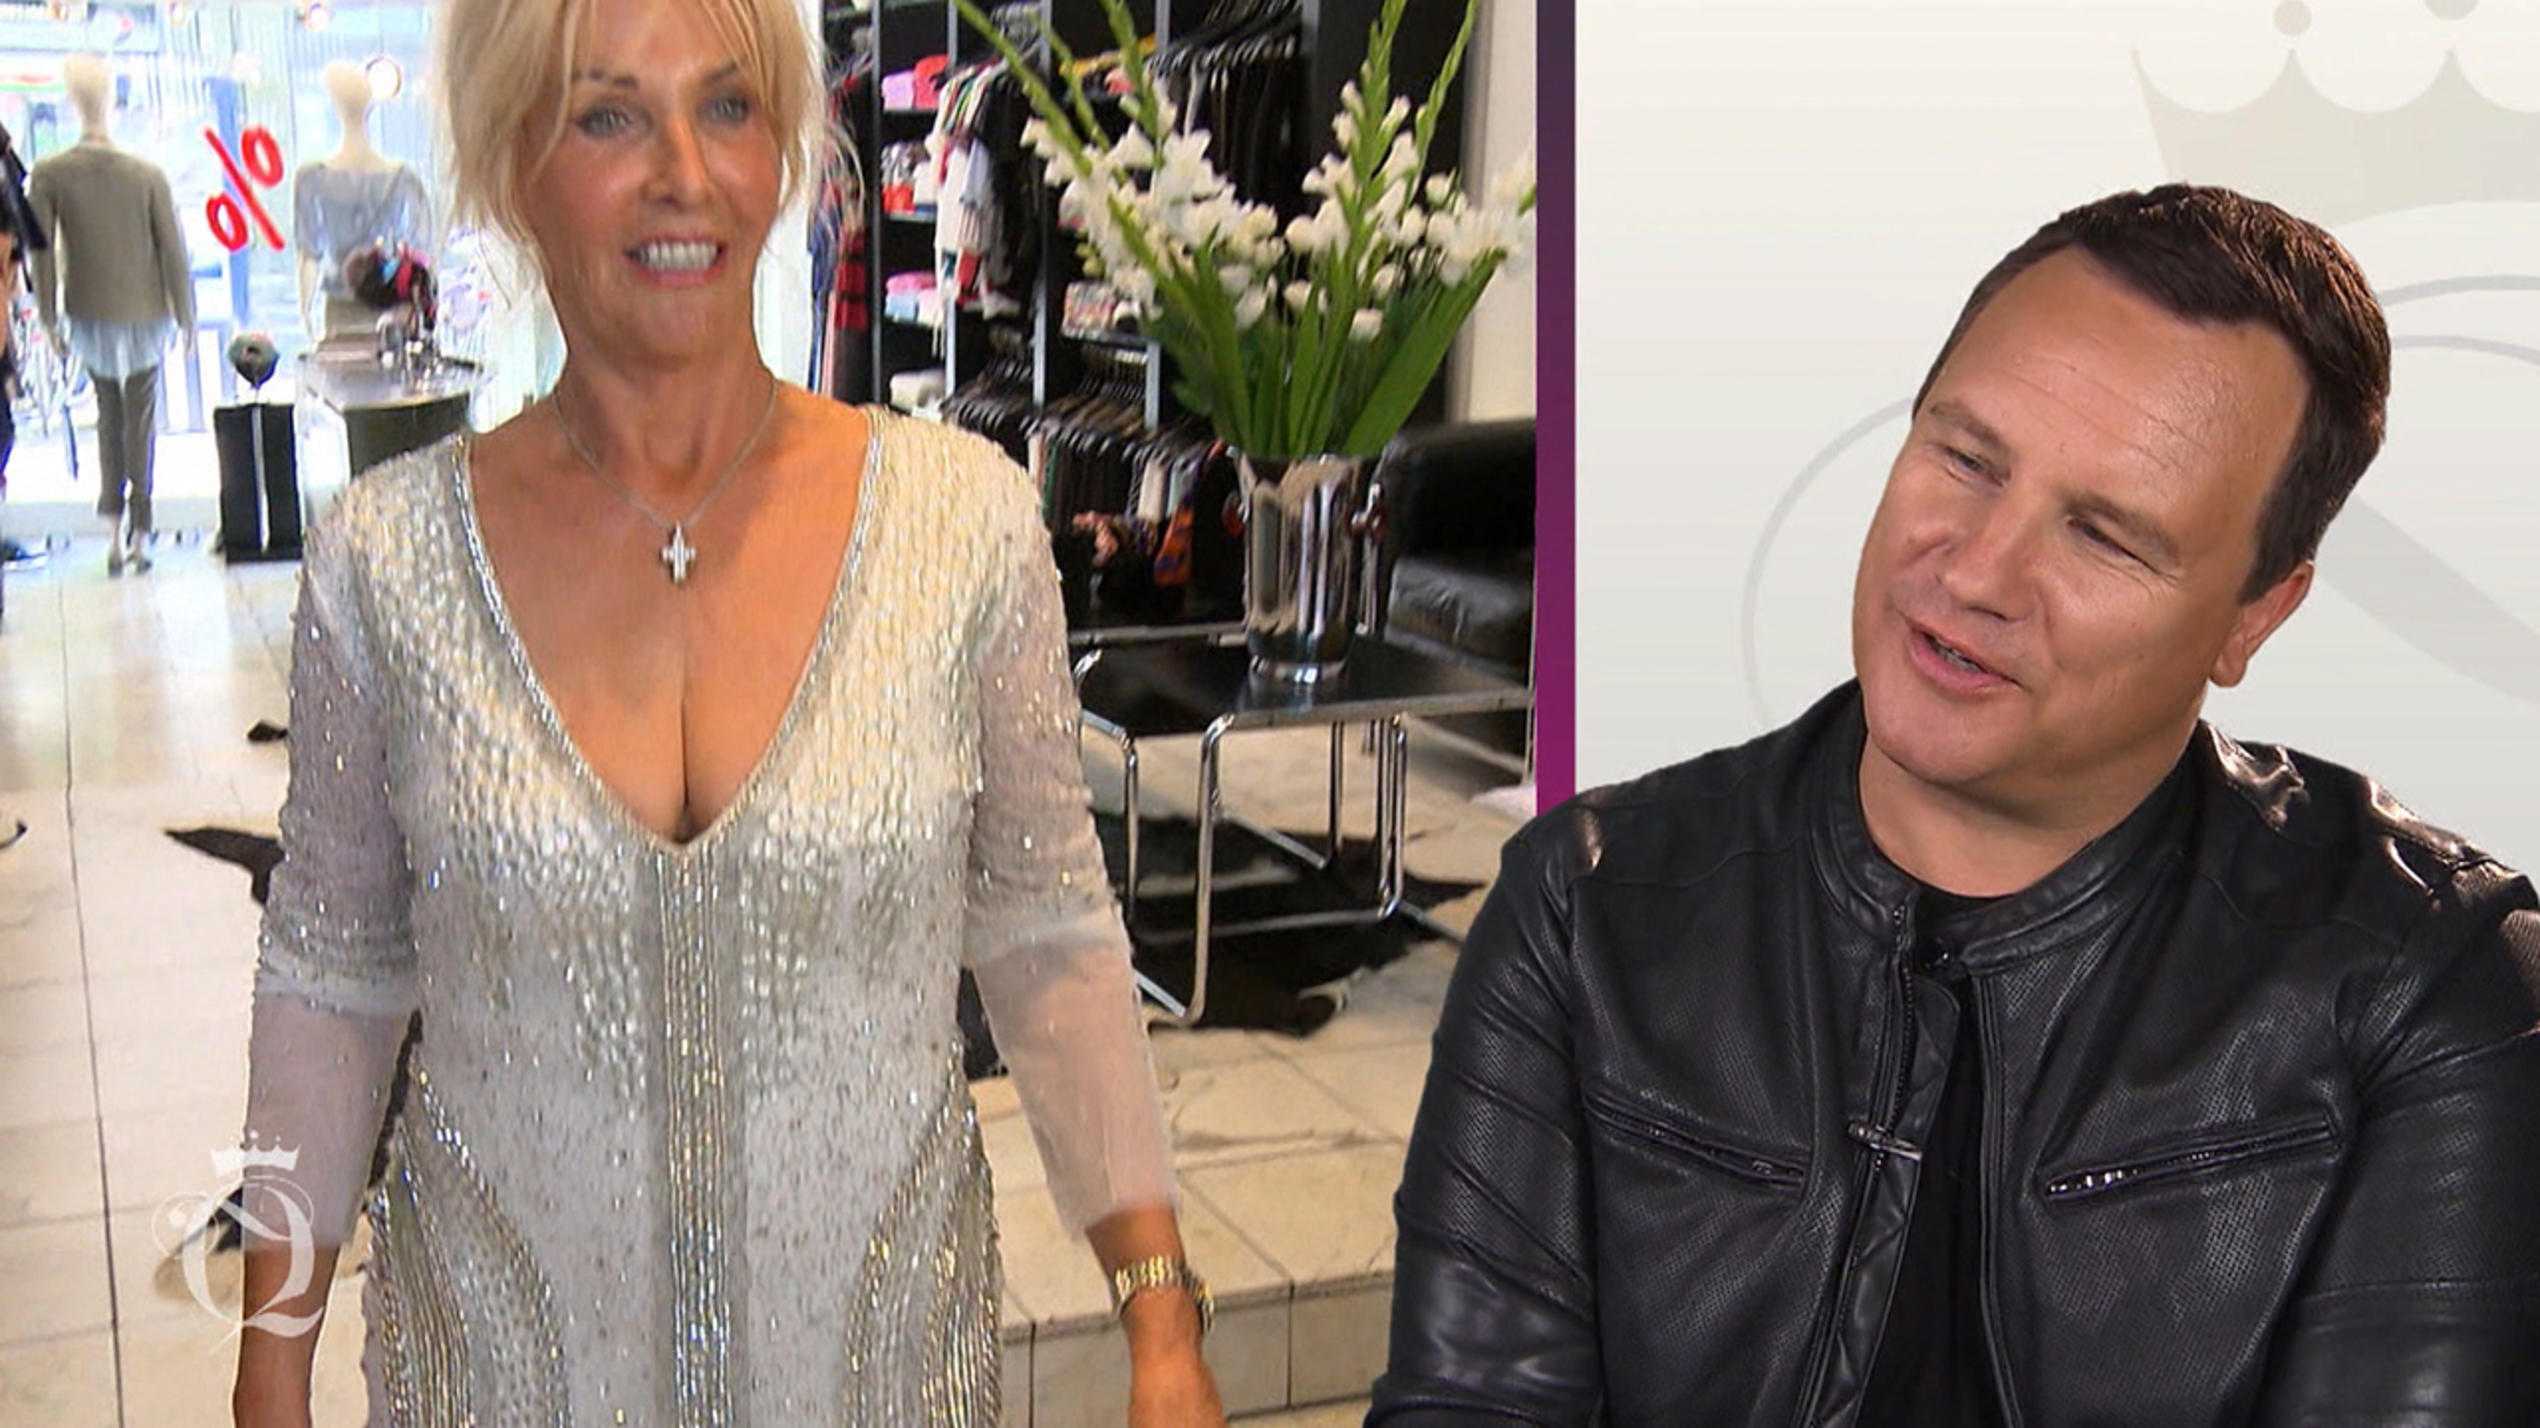 Shopping Queen in Hannover: Dienstagskandidatin Doris und Guido Maria Kretschmer